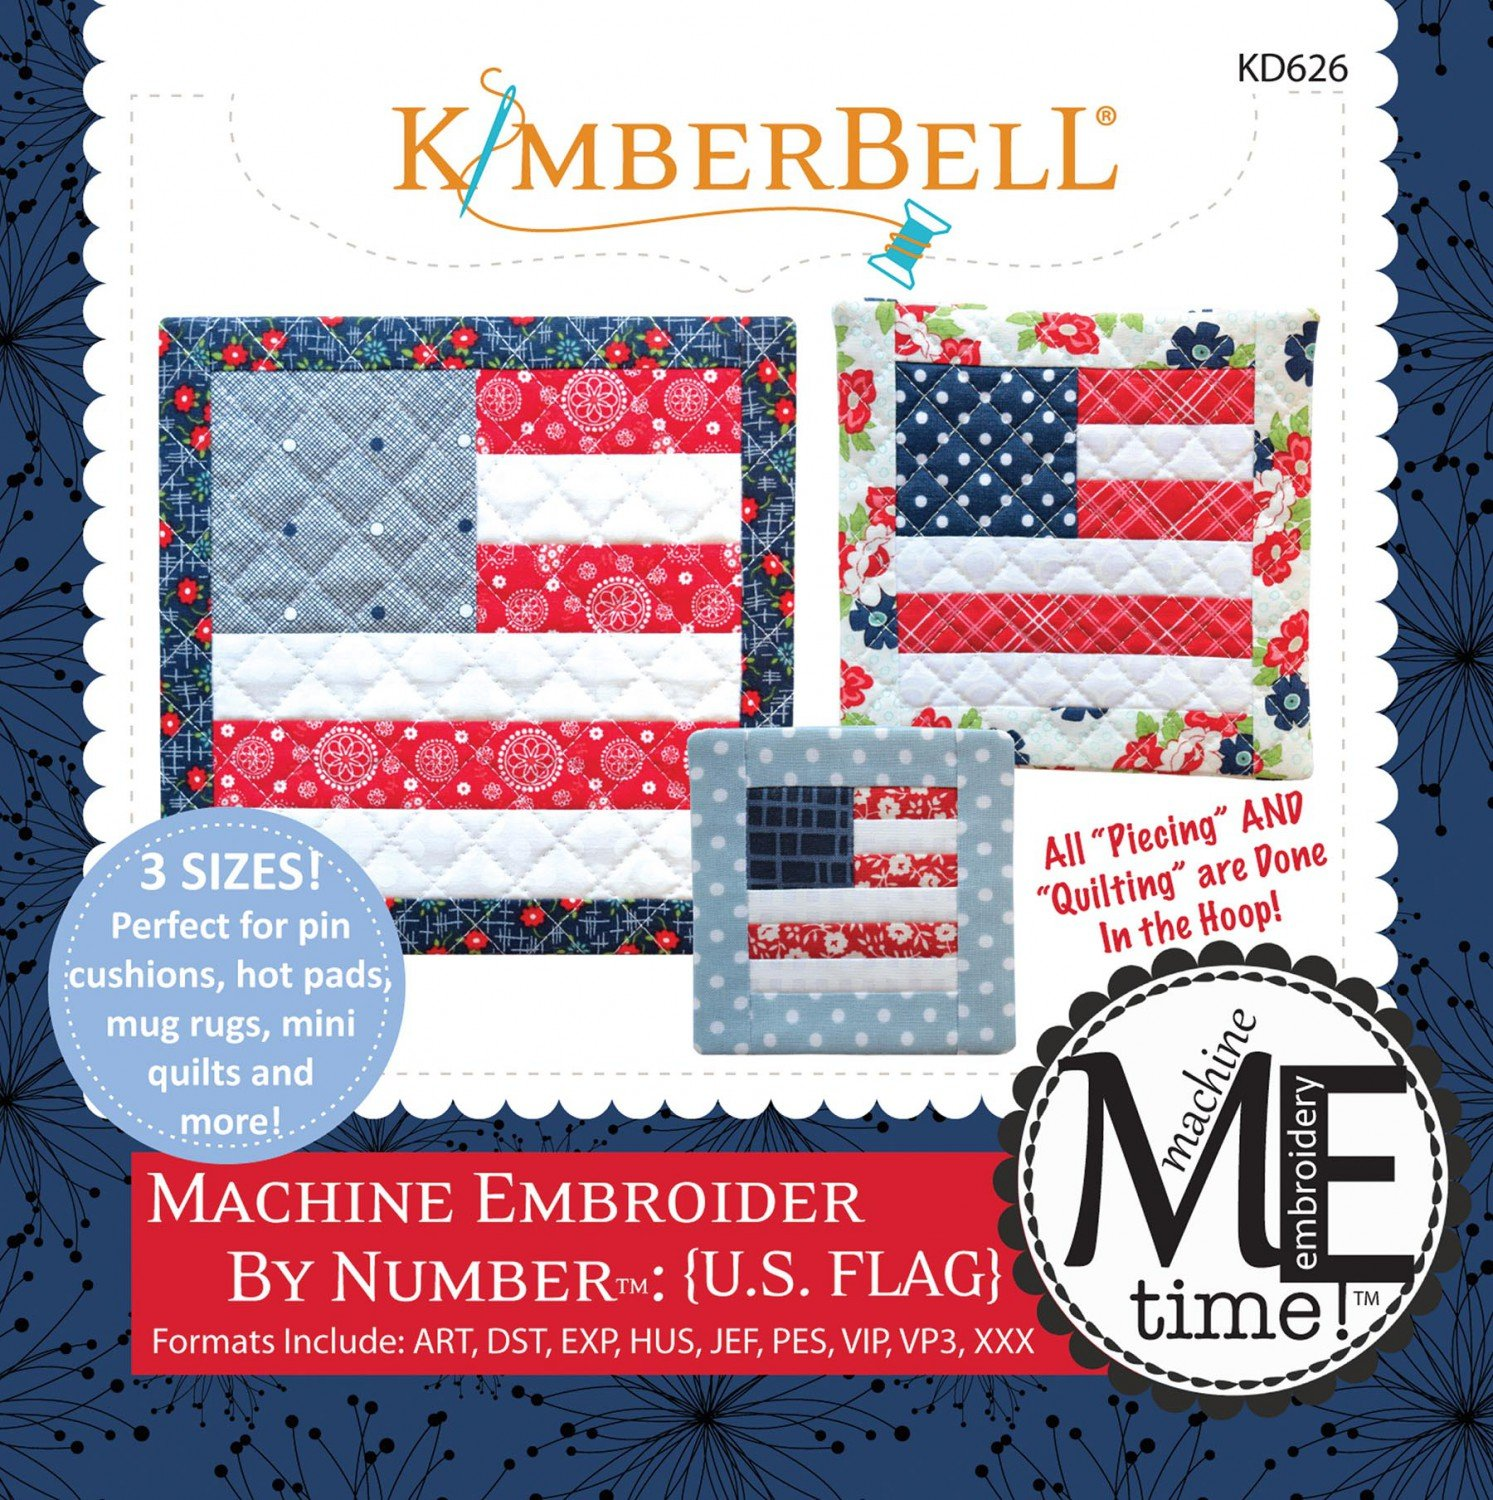 Embroider By Number: U.S. Flag